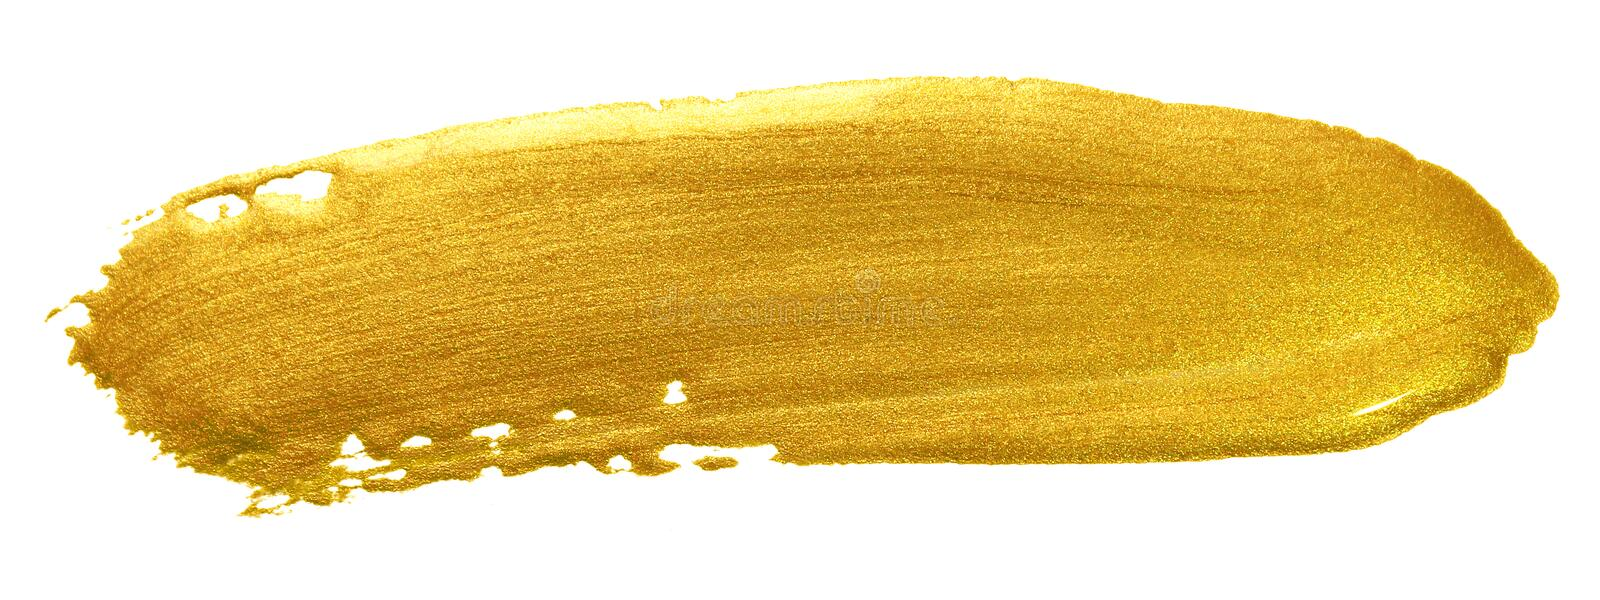 Gold color paint brush stroke. Acrylic golden smear stain on white background. Abstract detailed gold glittering textured wet pain royalty free stock photo